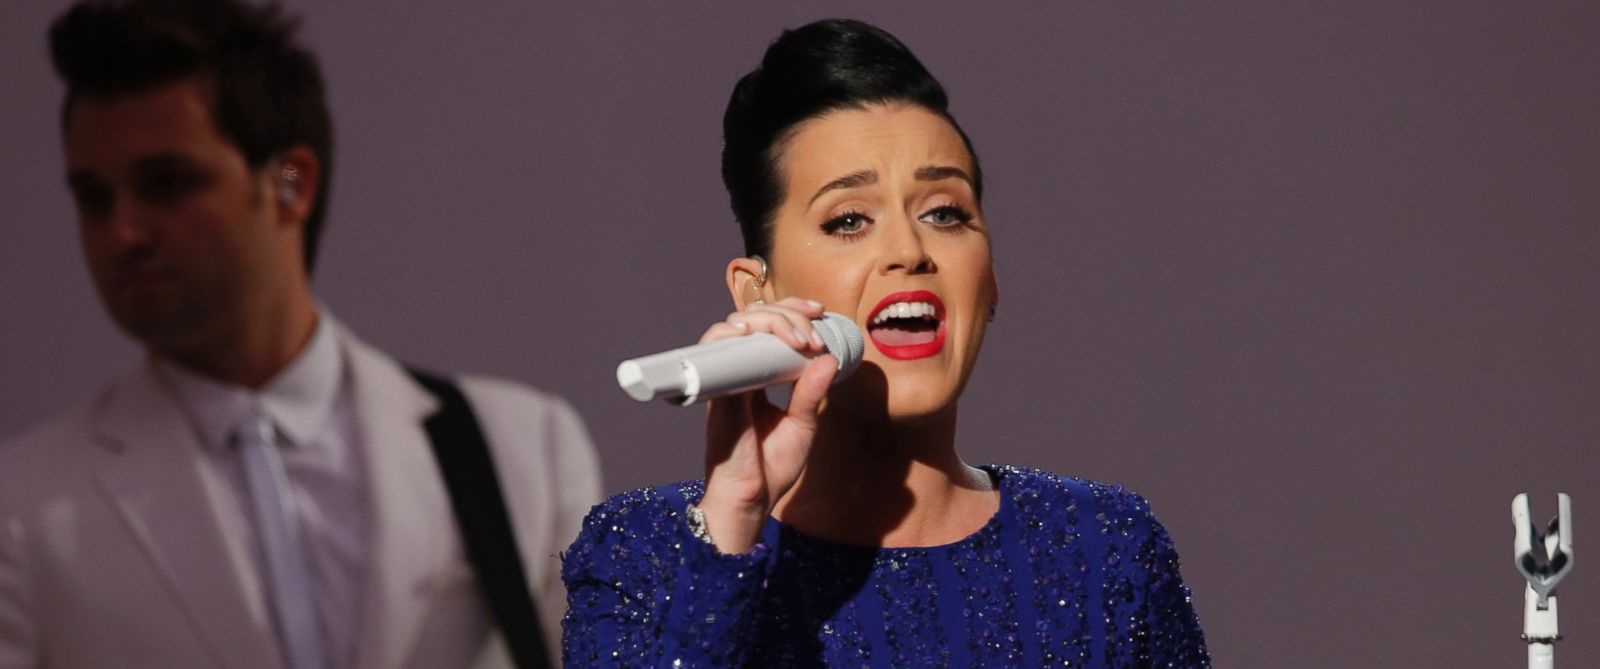 PHOTO: Singer Katy Perry performs at an event for the Special Olympics hosted by President Barack Obama in the State Dining Room at the White House in Washington, July 31, 2014.